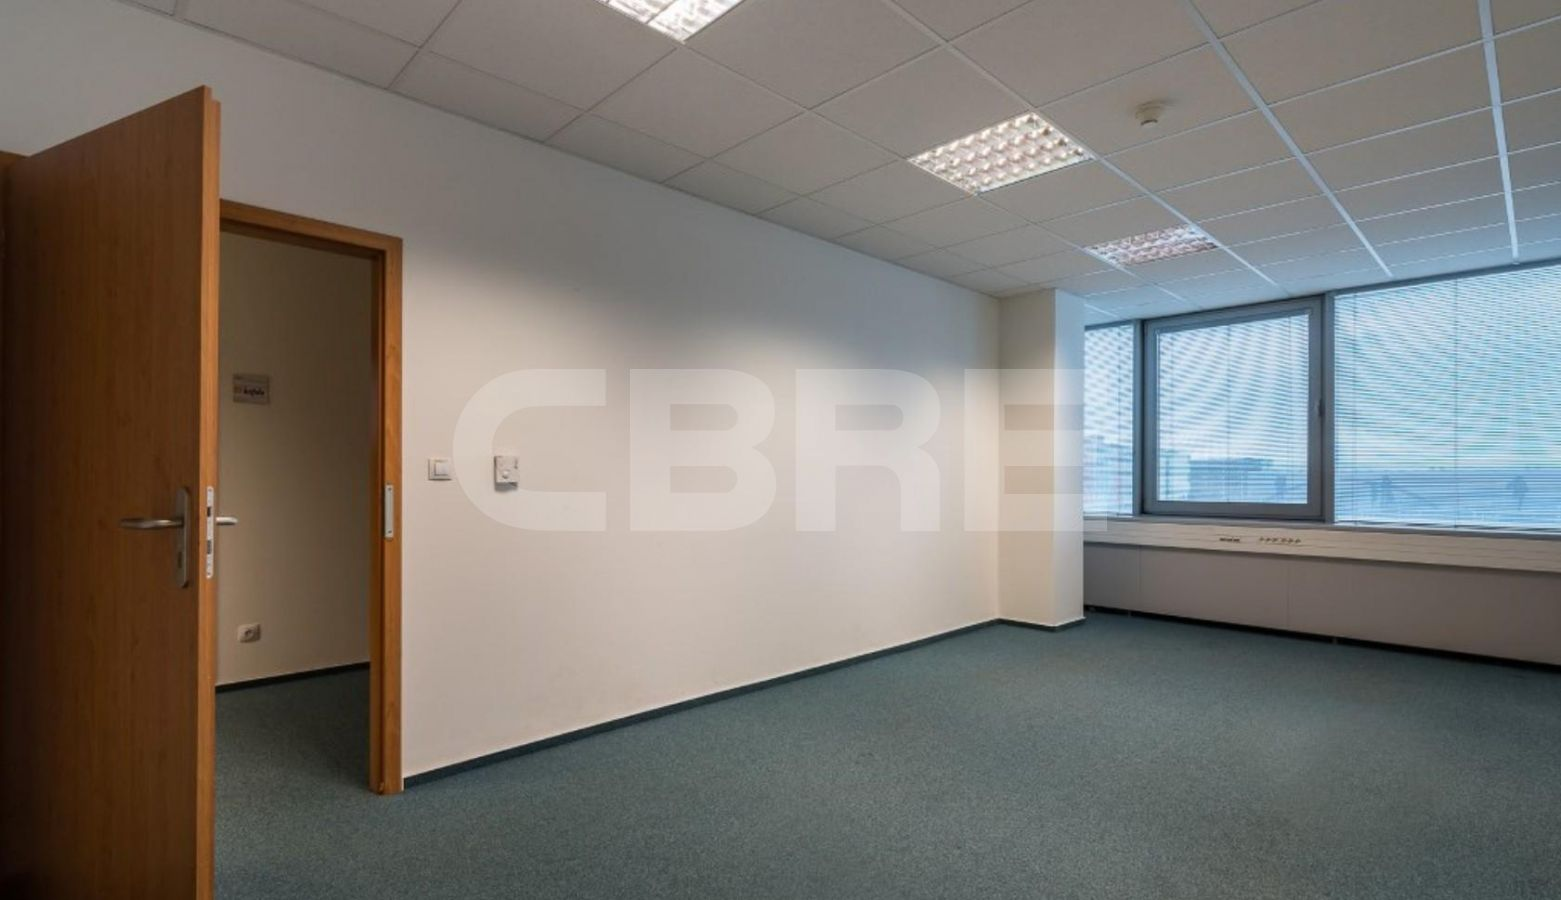 Trade Center Košice, Košice - Staré Mesto | Offices for rent by CBRE | 1